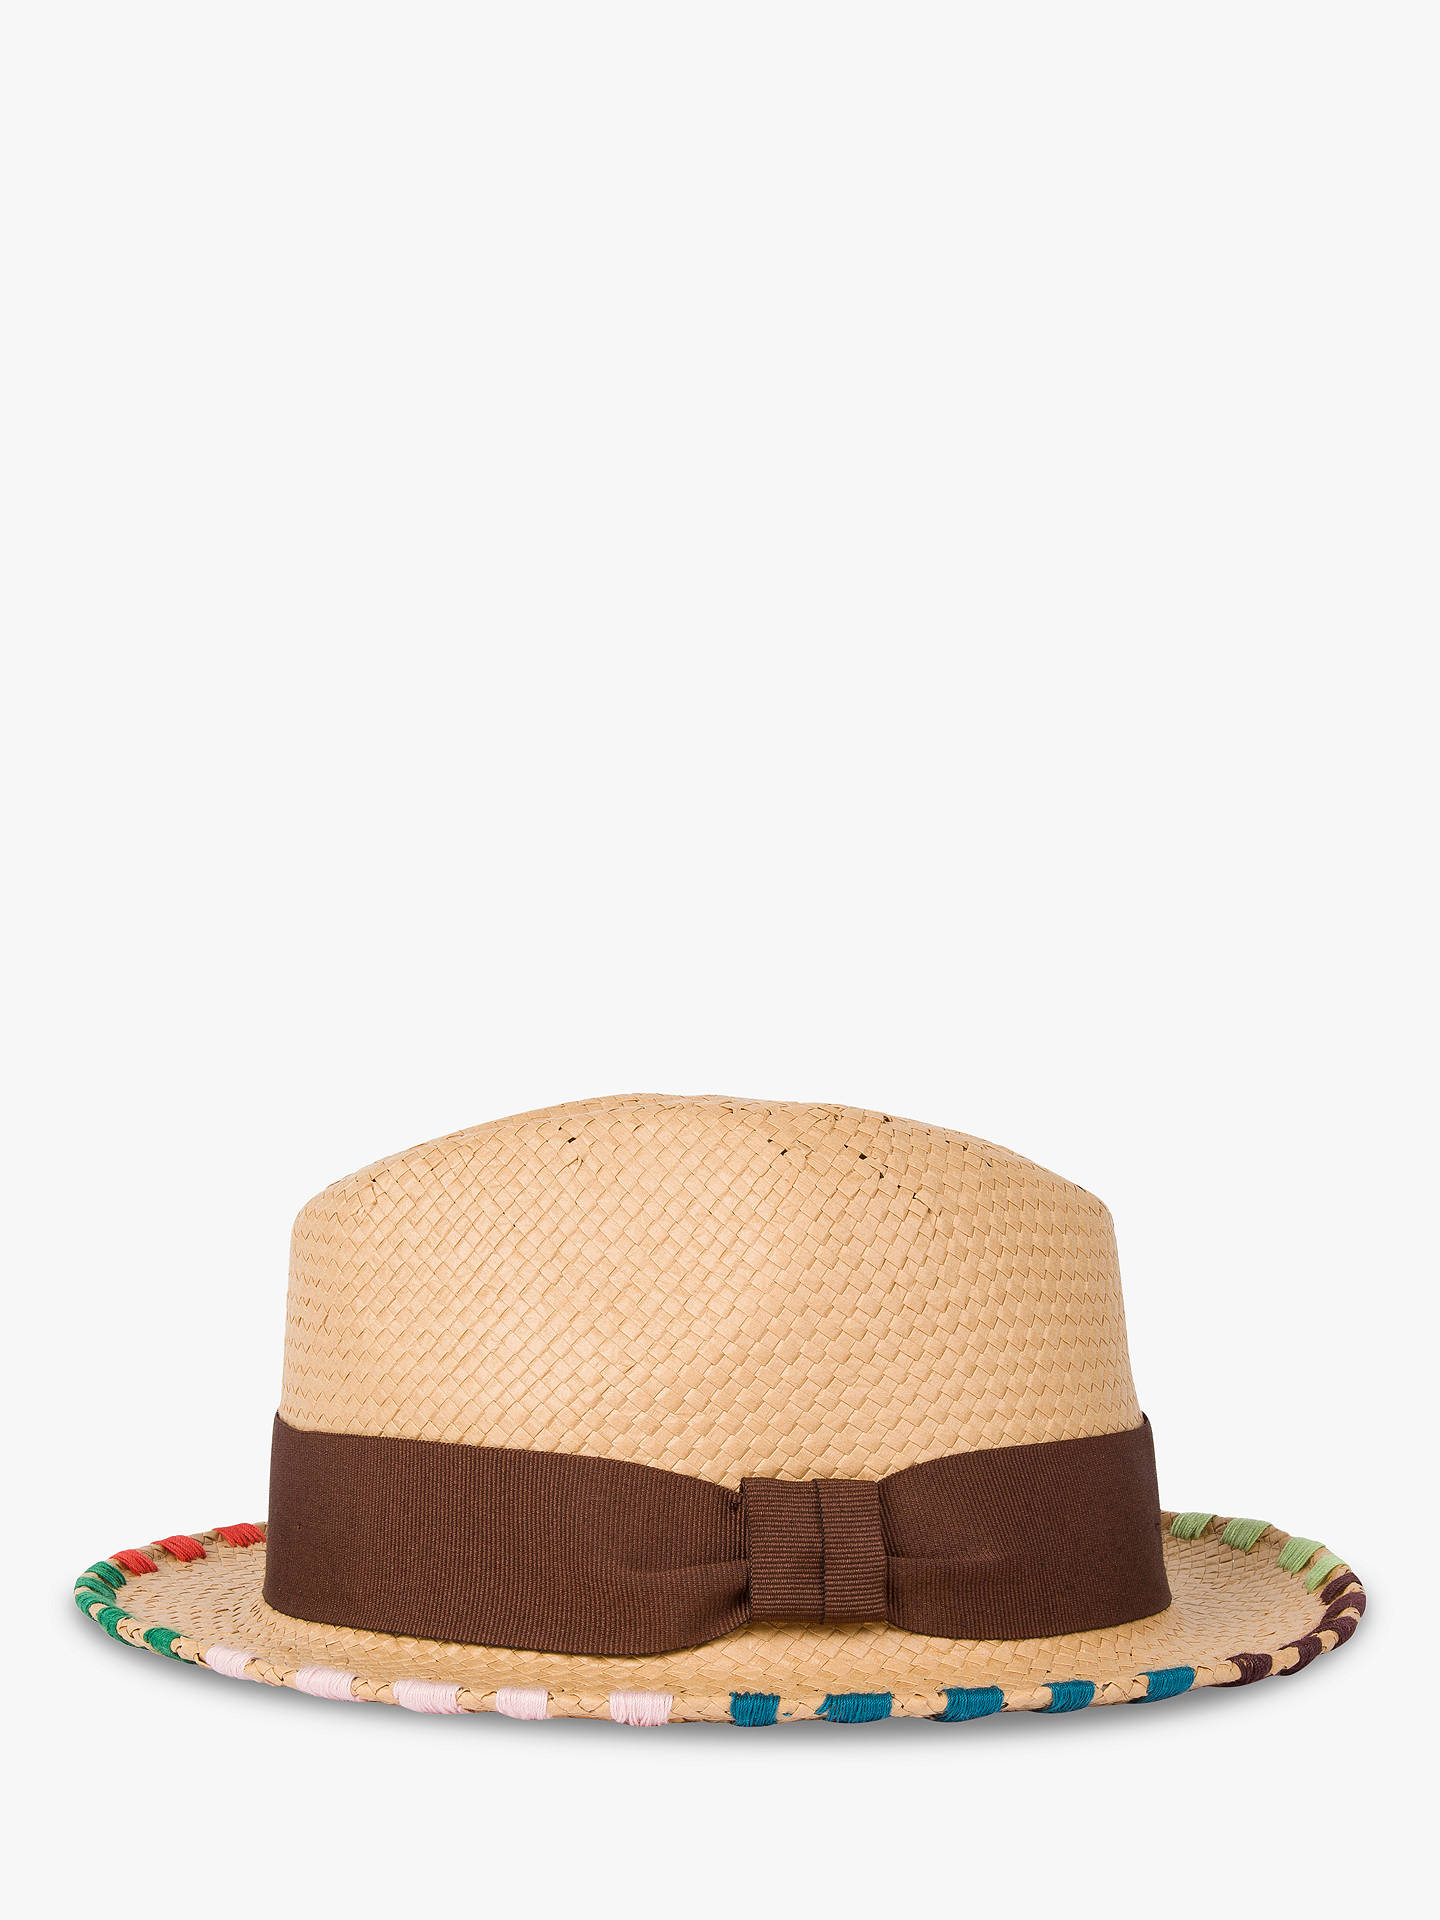 0902436befd75 Buy Paul Smith Fedora Hat